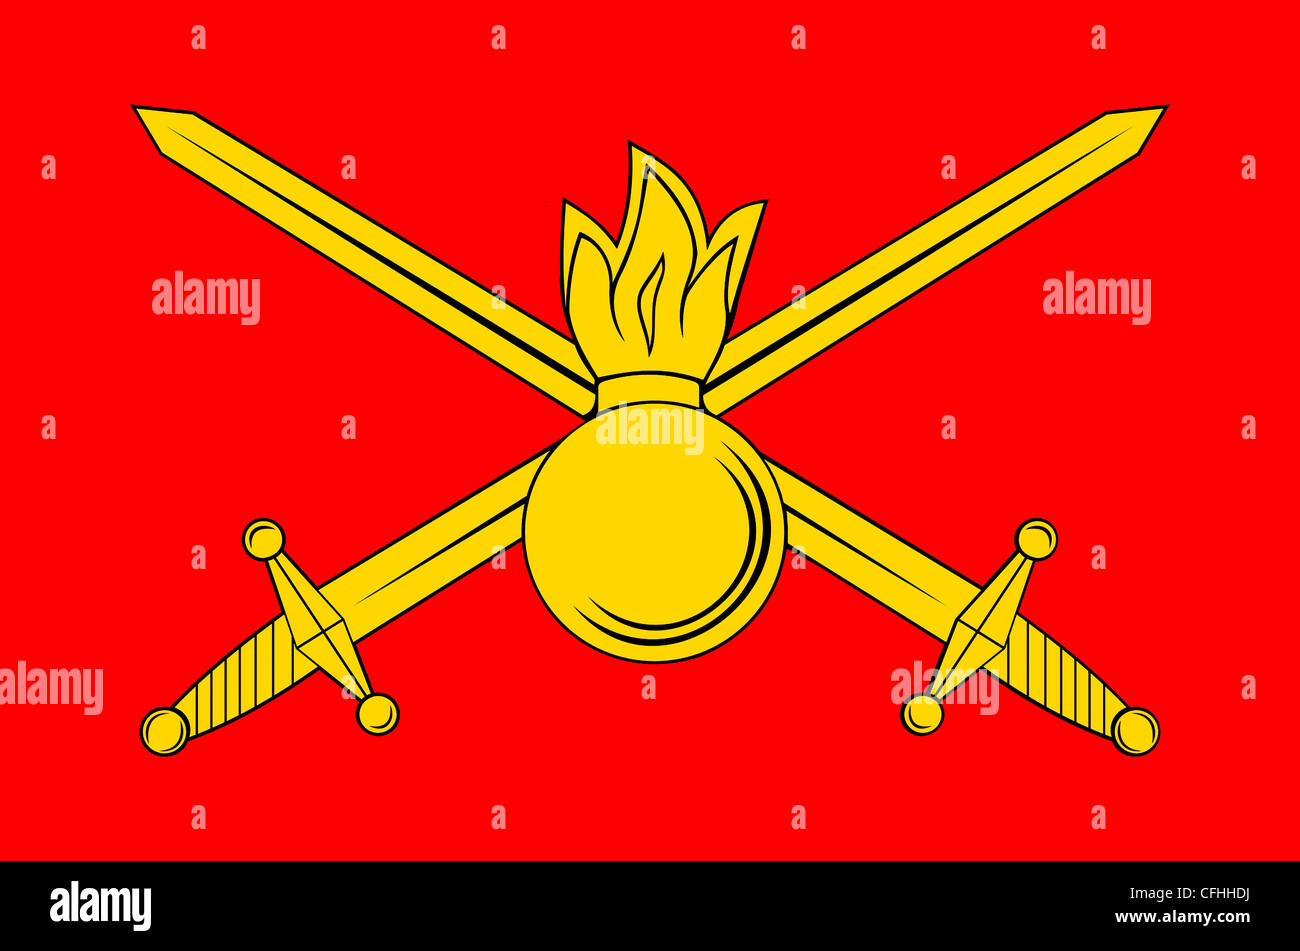 Flag of the Russian army. - Stock Image